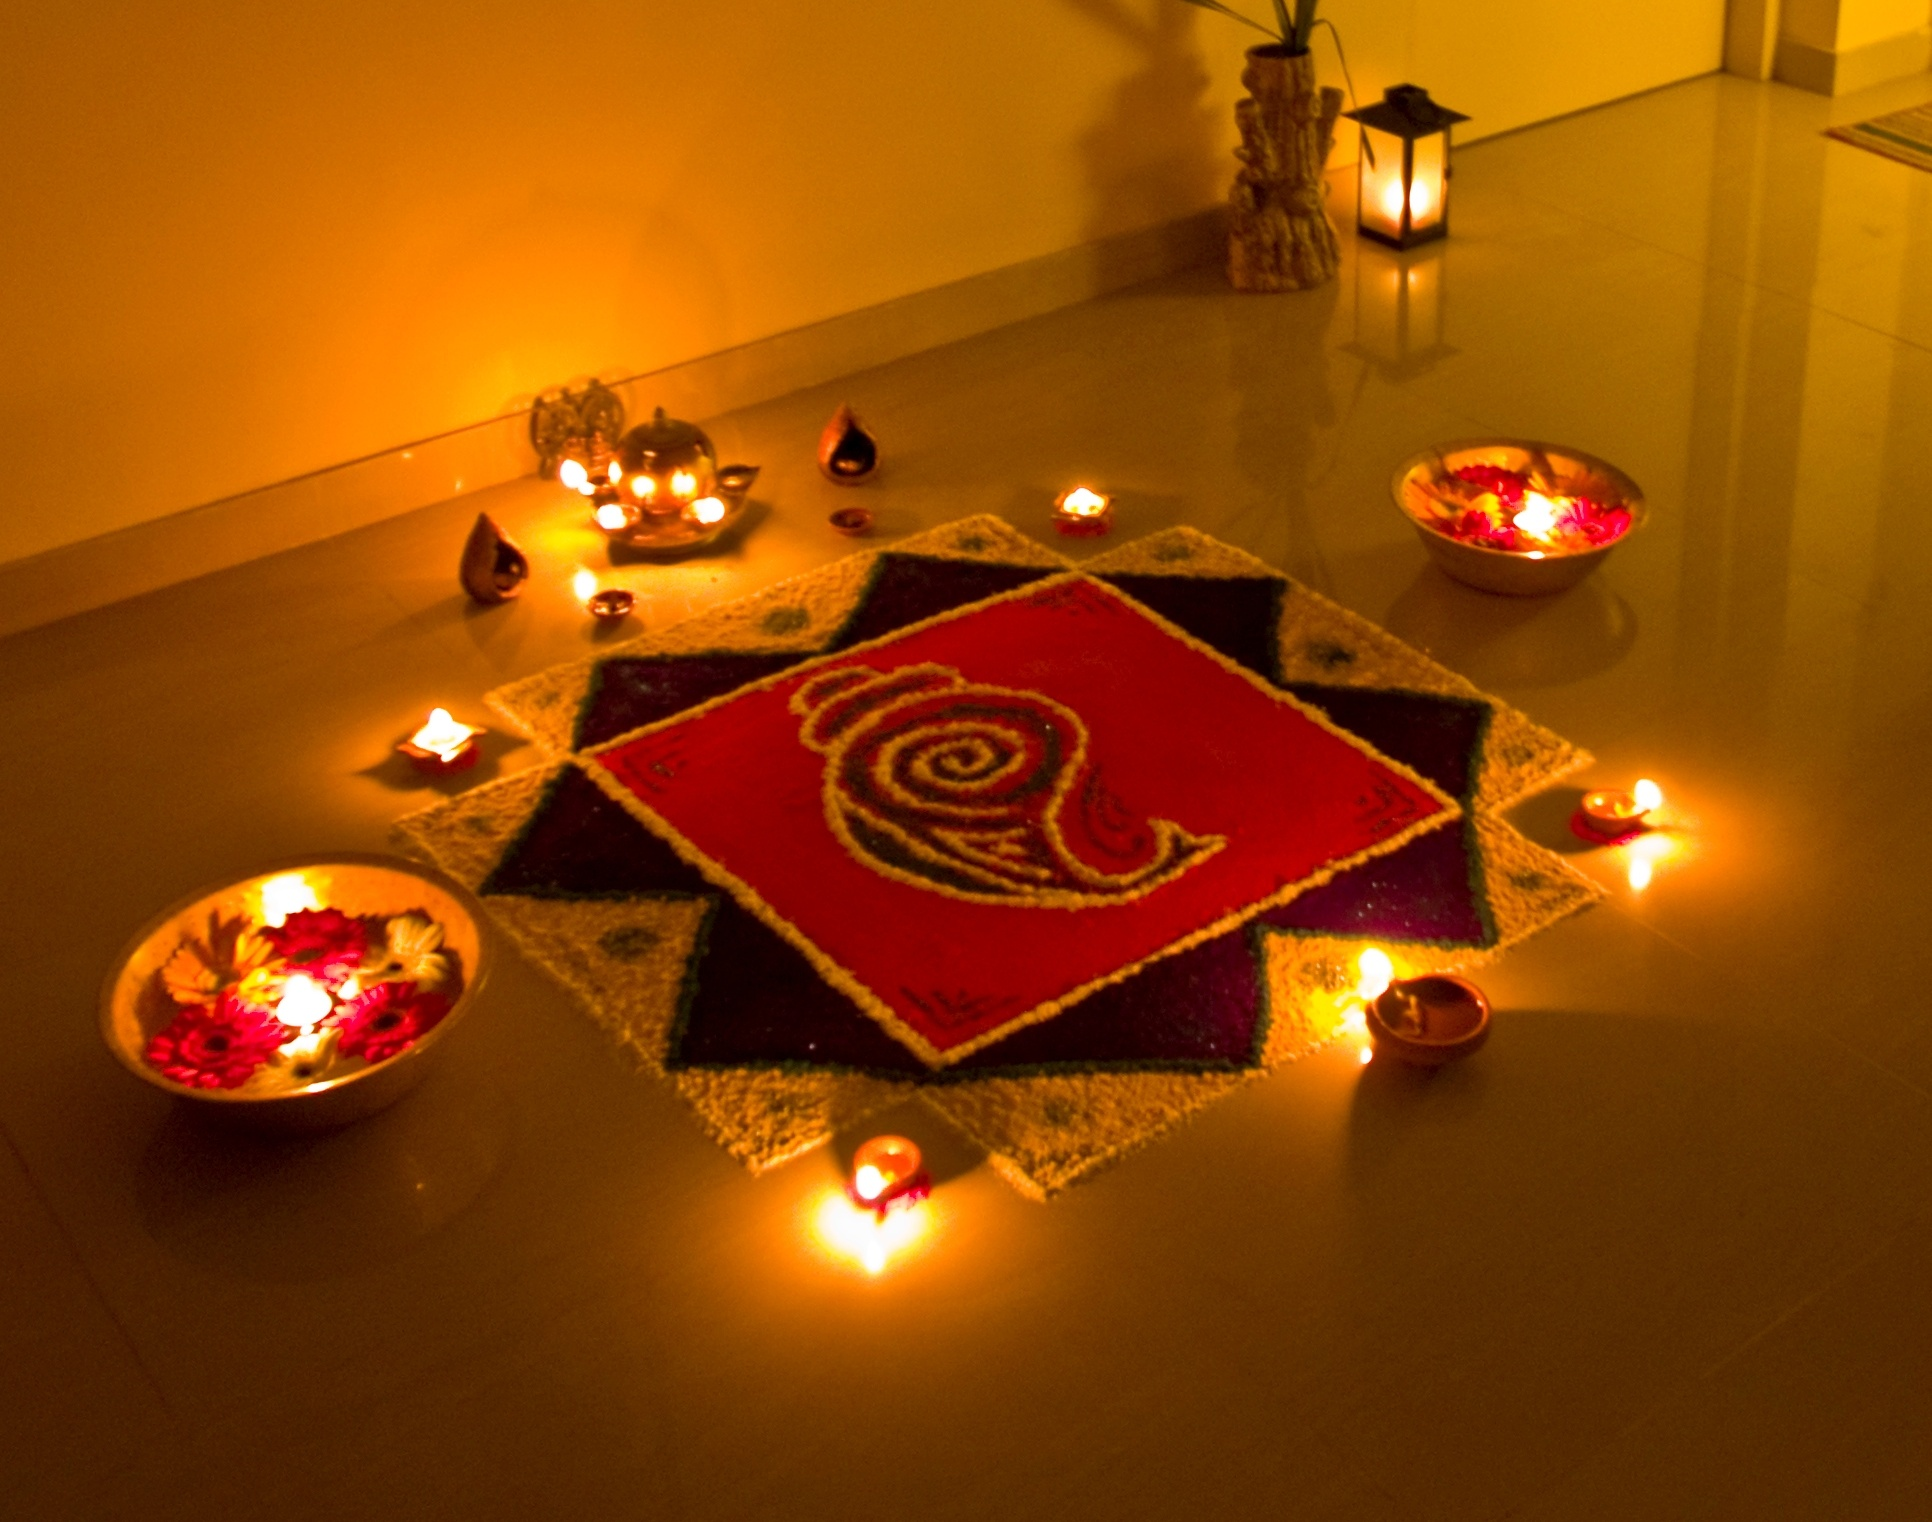 On Diwali